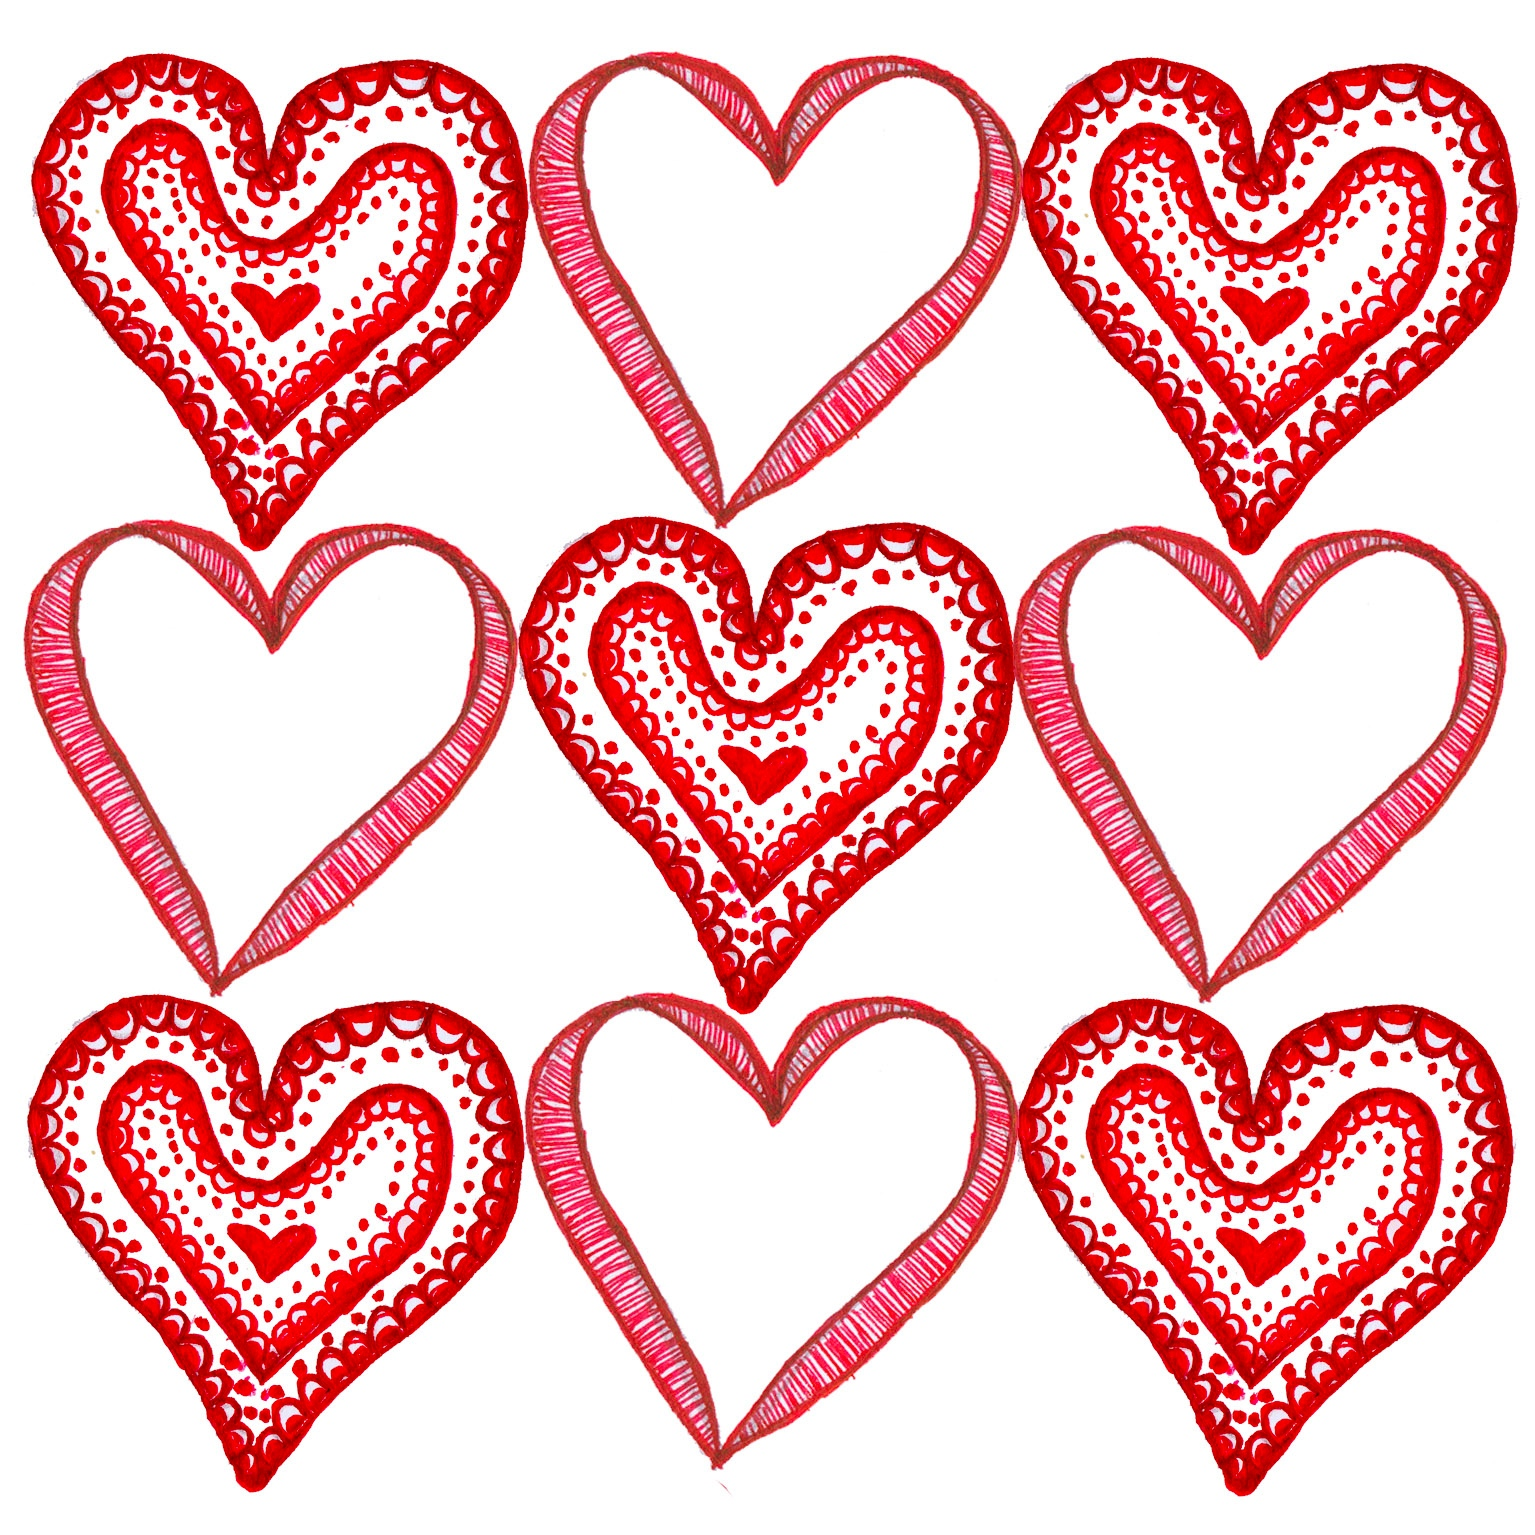 Valentines day Hearts Hd wallpapers Pictures Photos 2013 Online 1535x1535